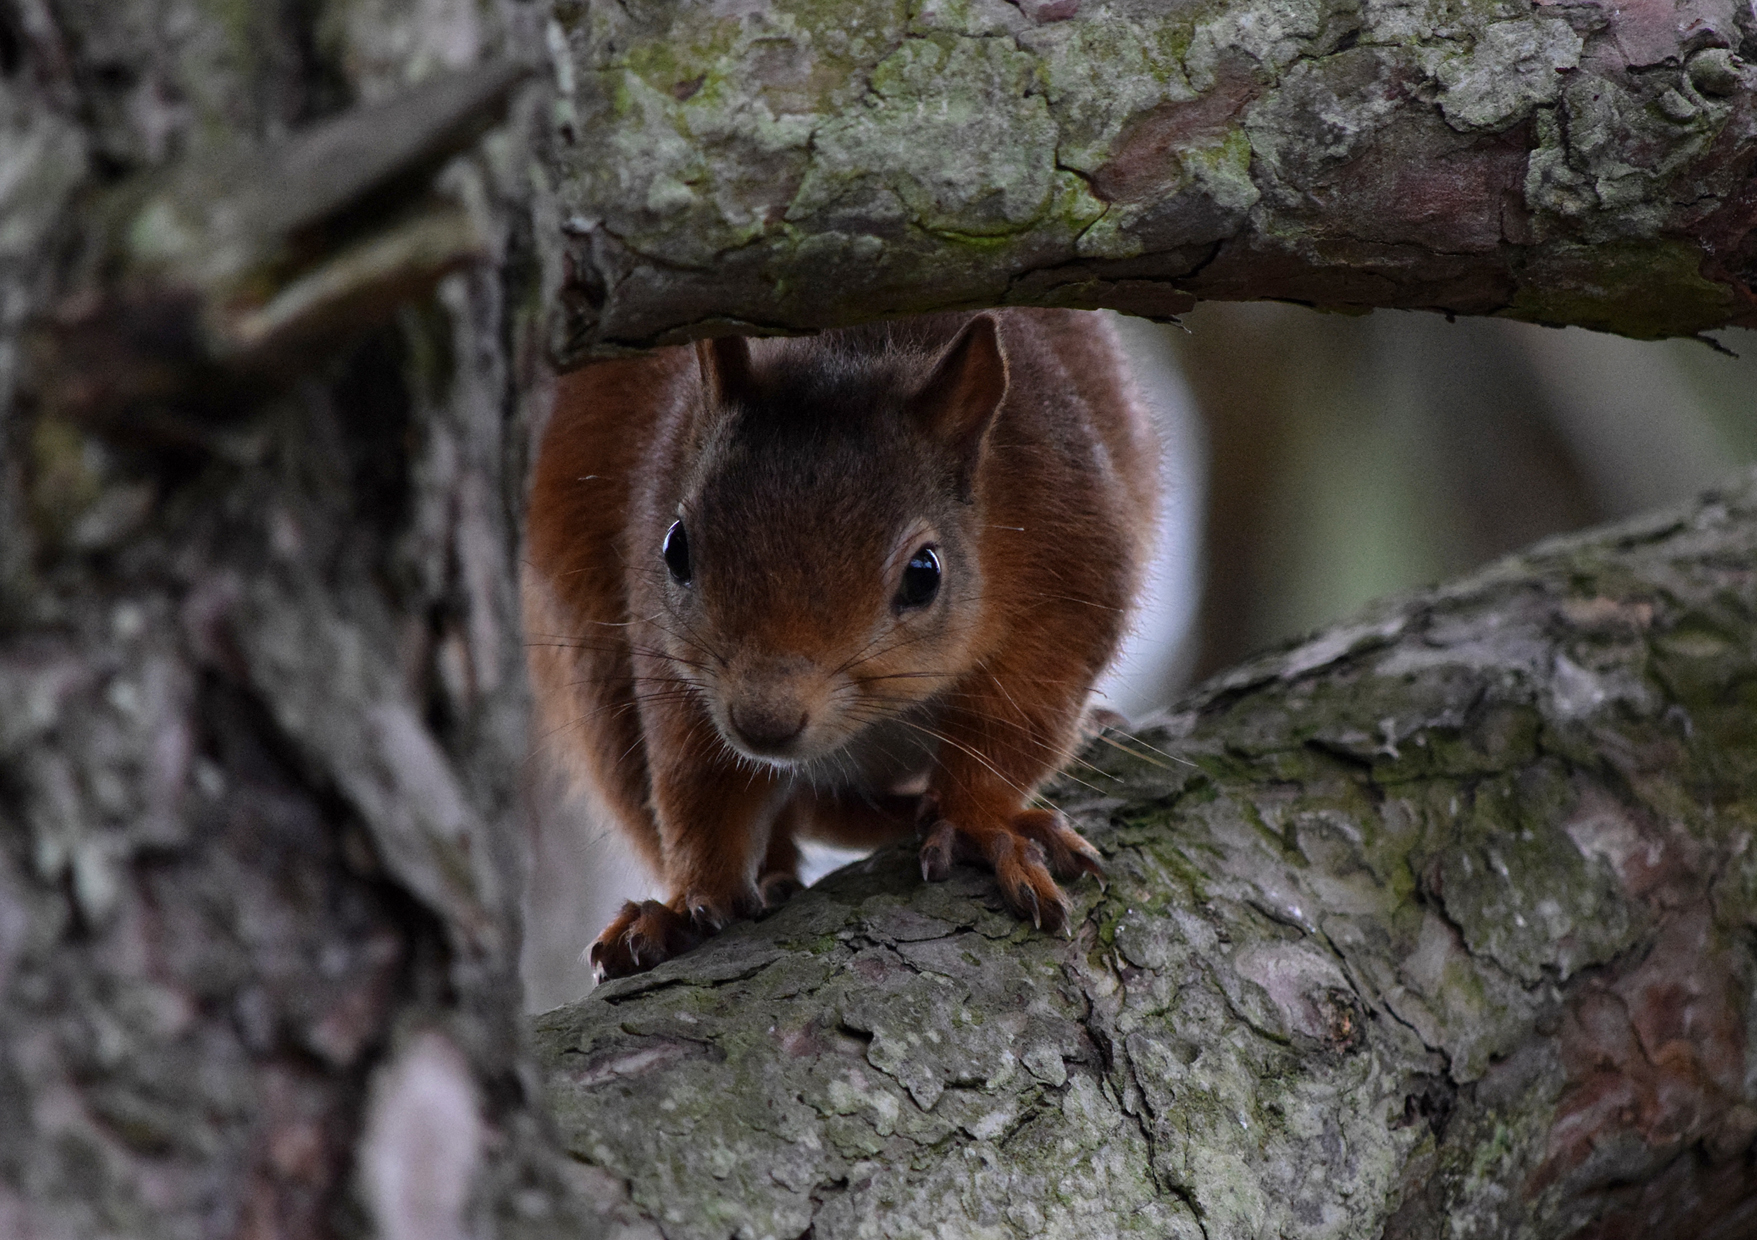 An award-winning photo of a red squirrel at Lossiemouth